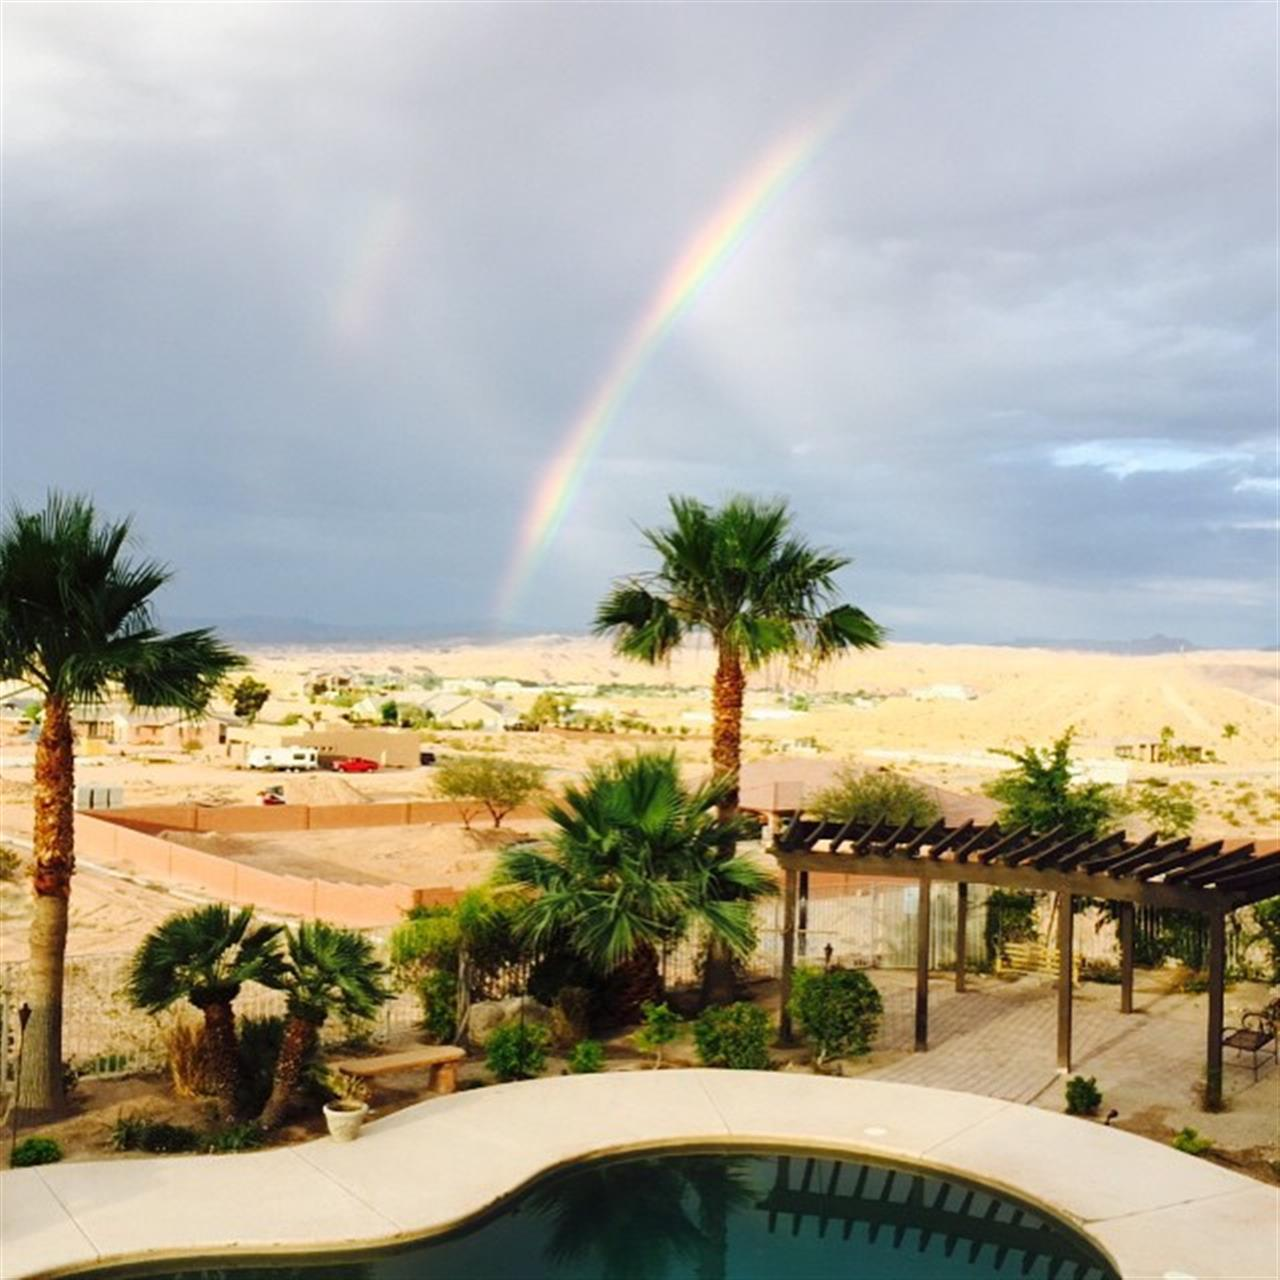 Cool rainbow early this morning. #moapavalleyrealestate